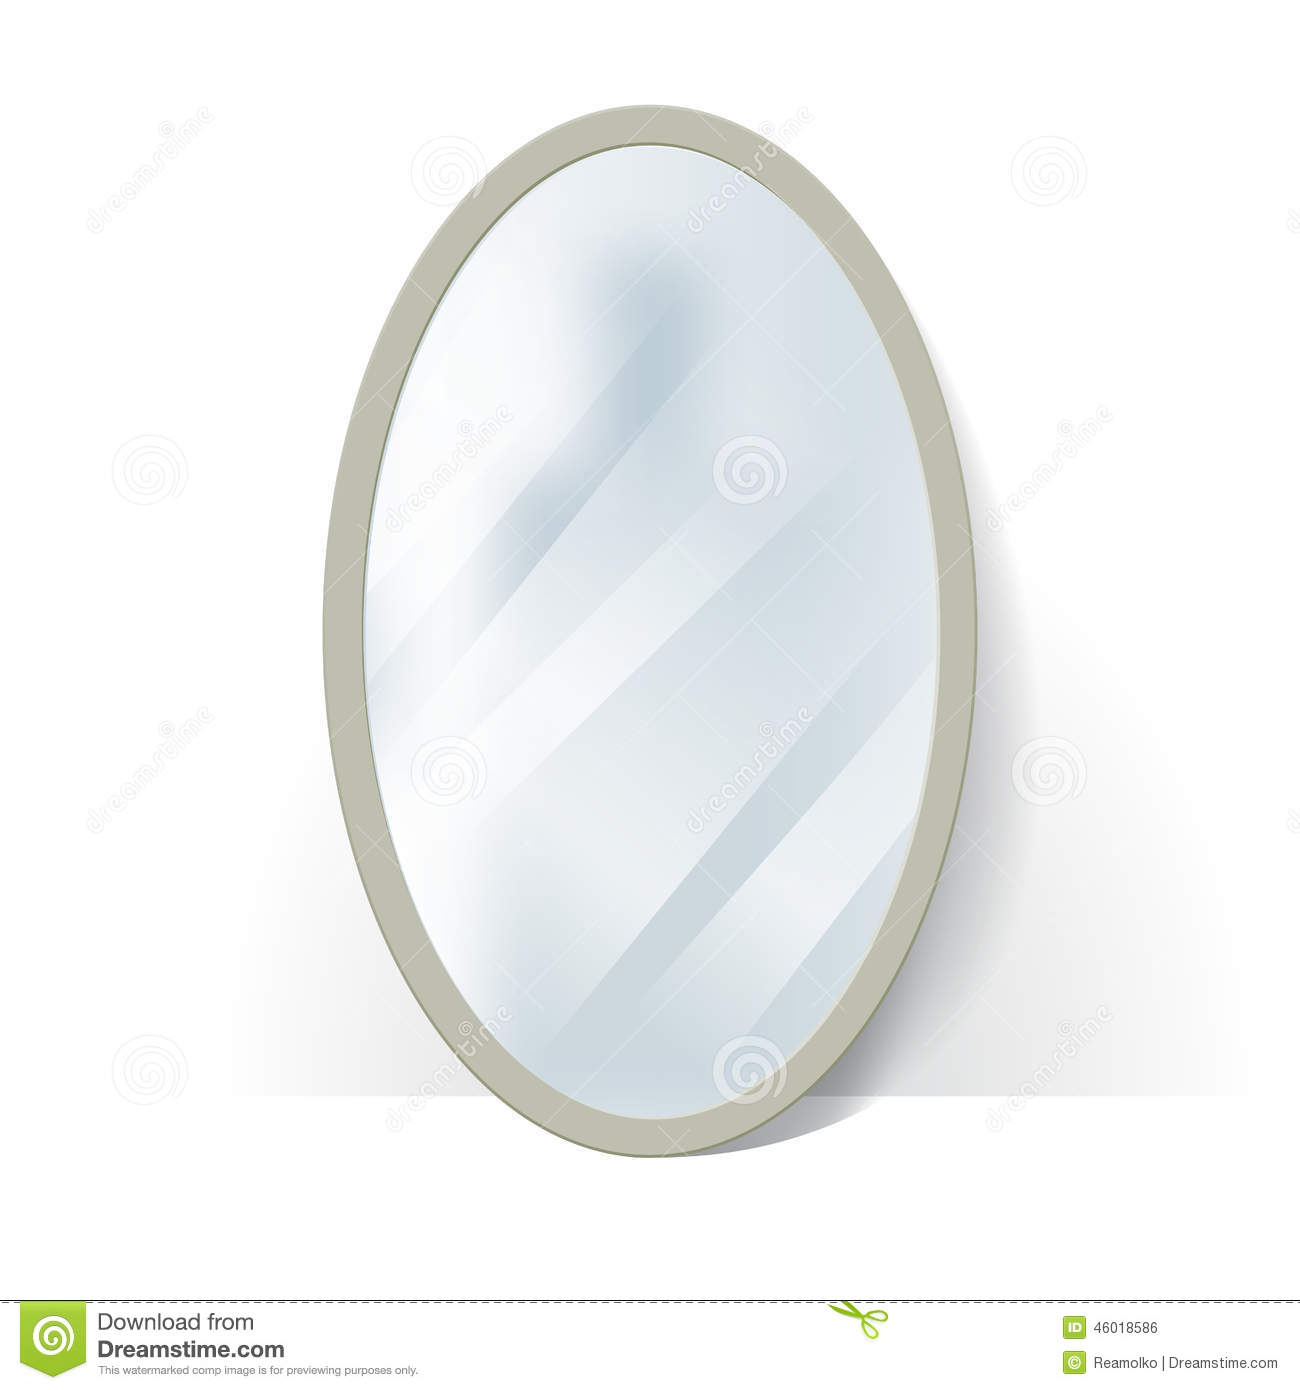 Big oval mirror with blurry reflection stock vector for Reflection miroir